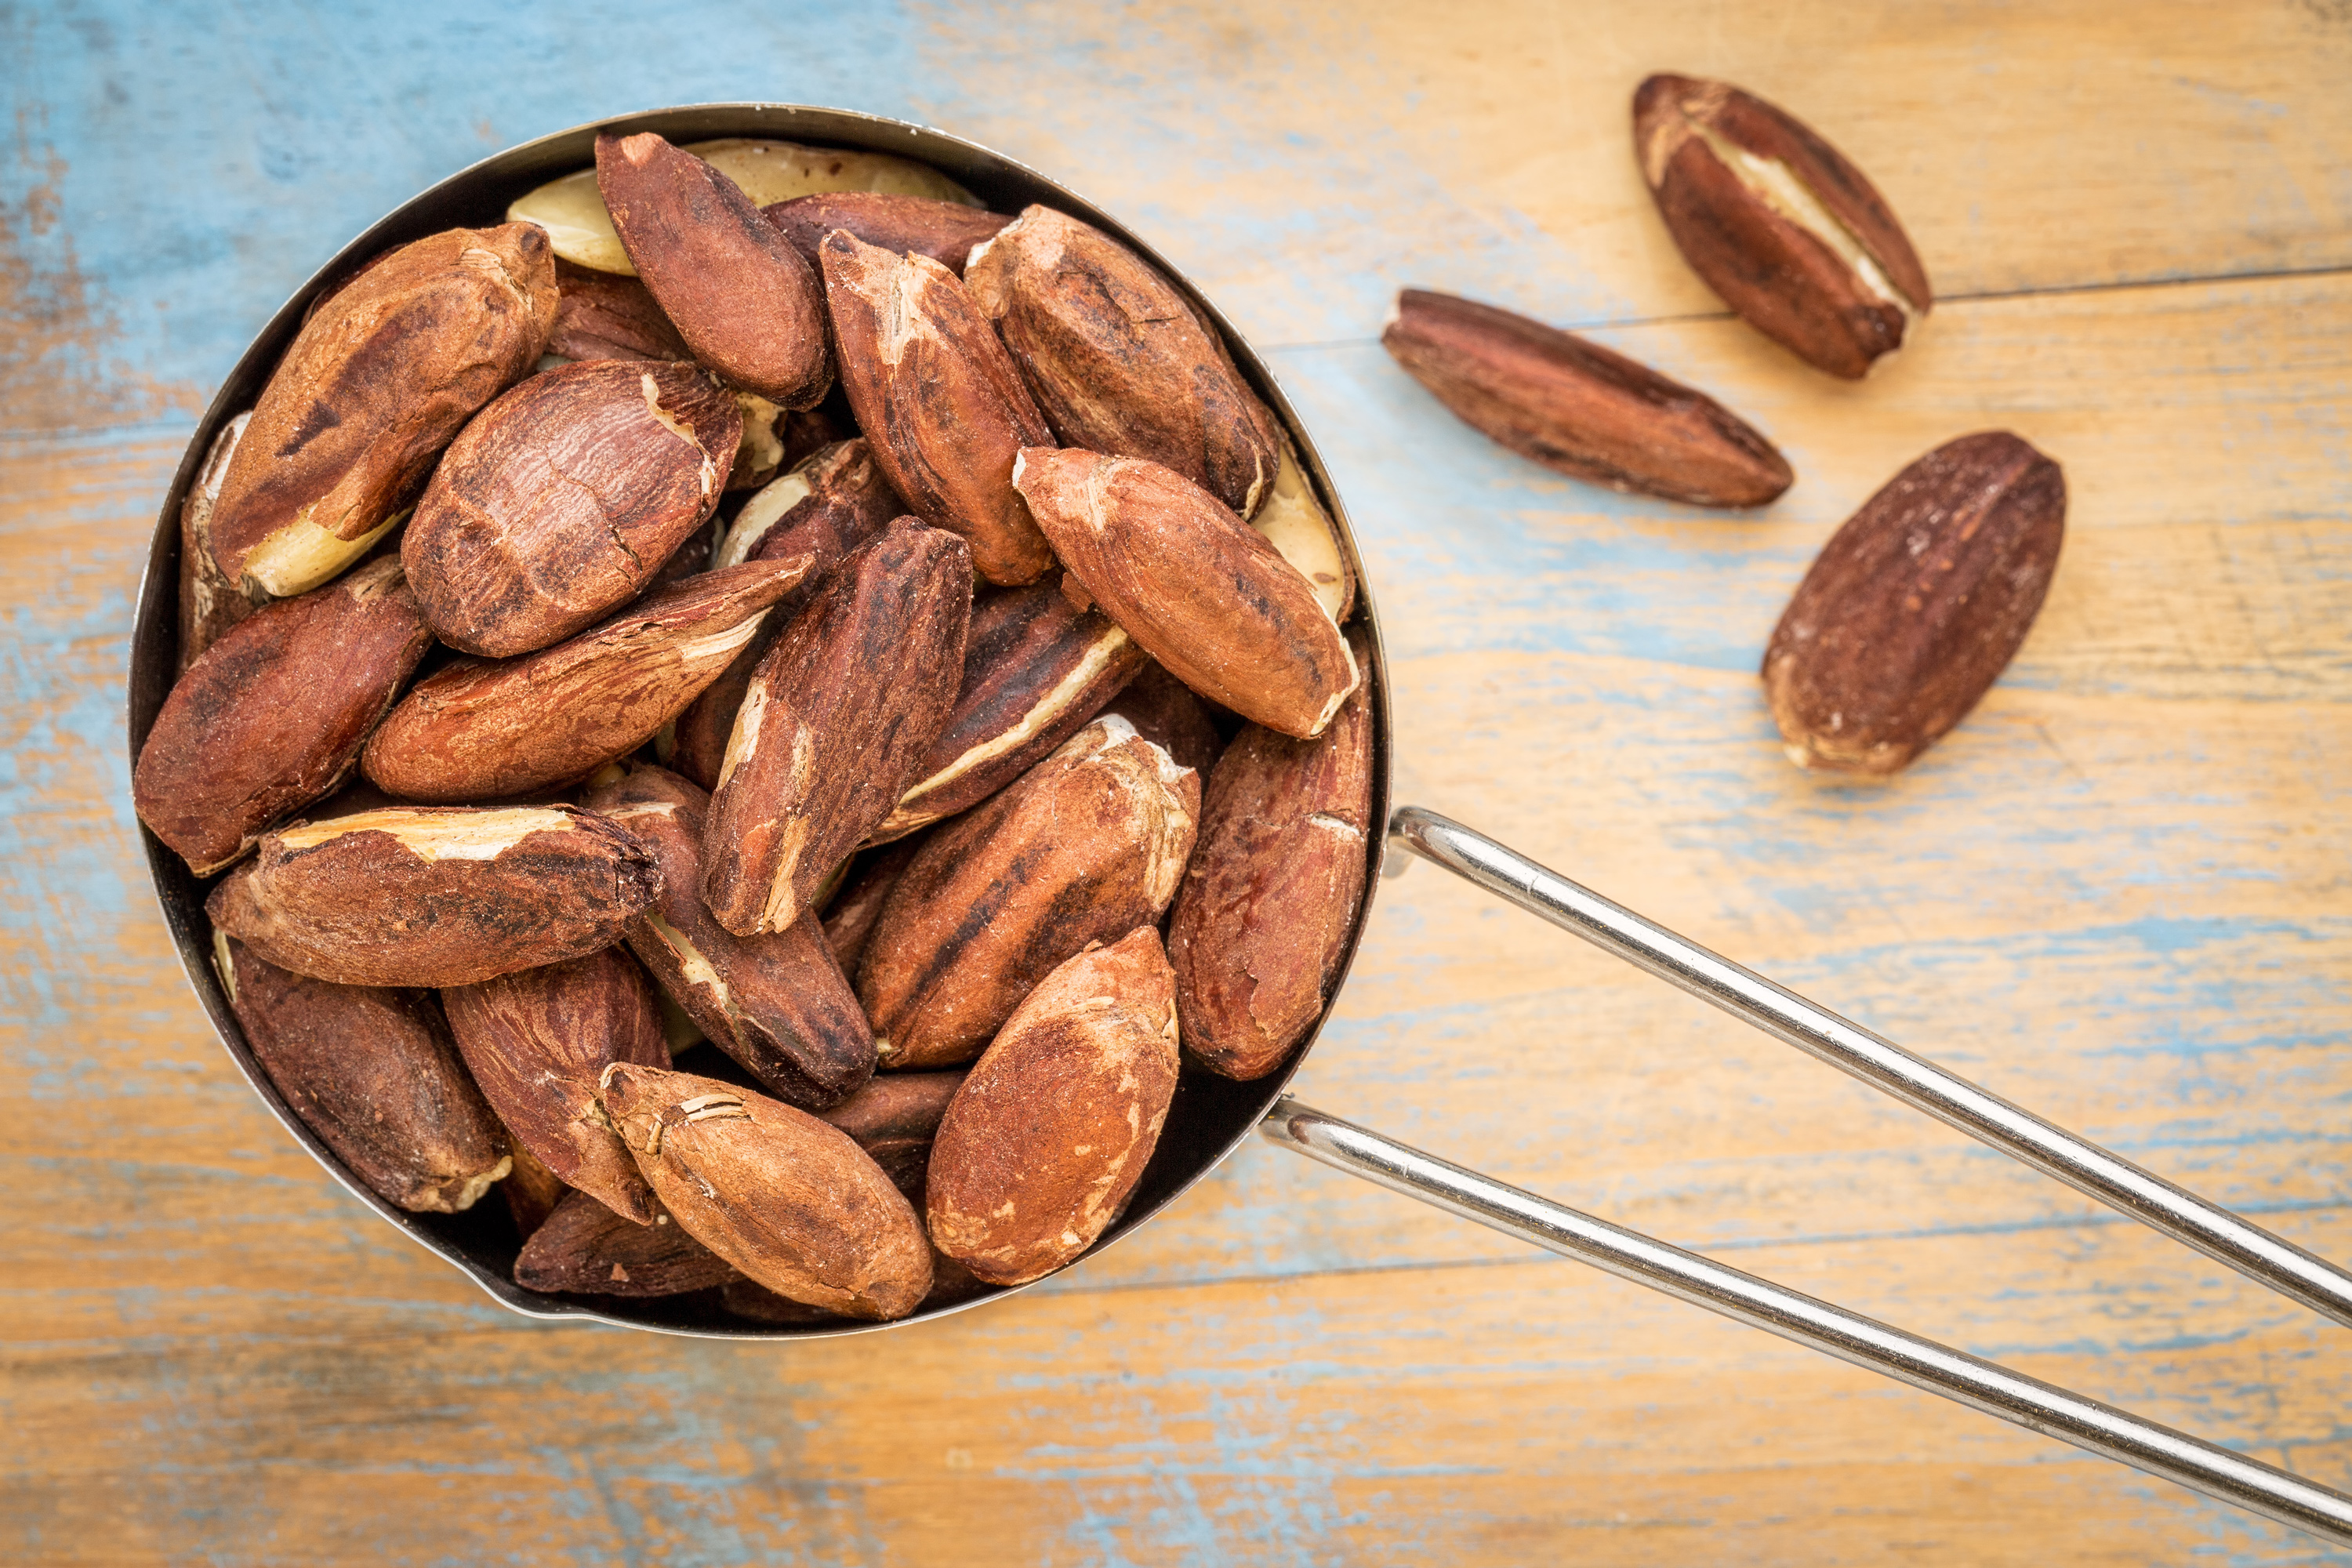 Pili Nuts Are the New Superfood Nut You're Going to Love